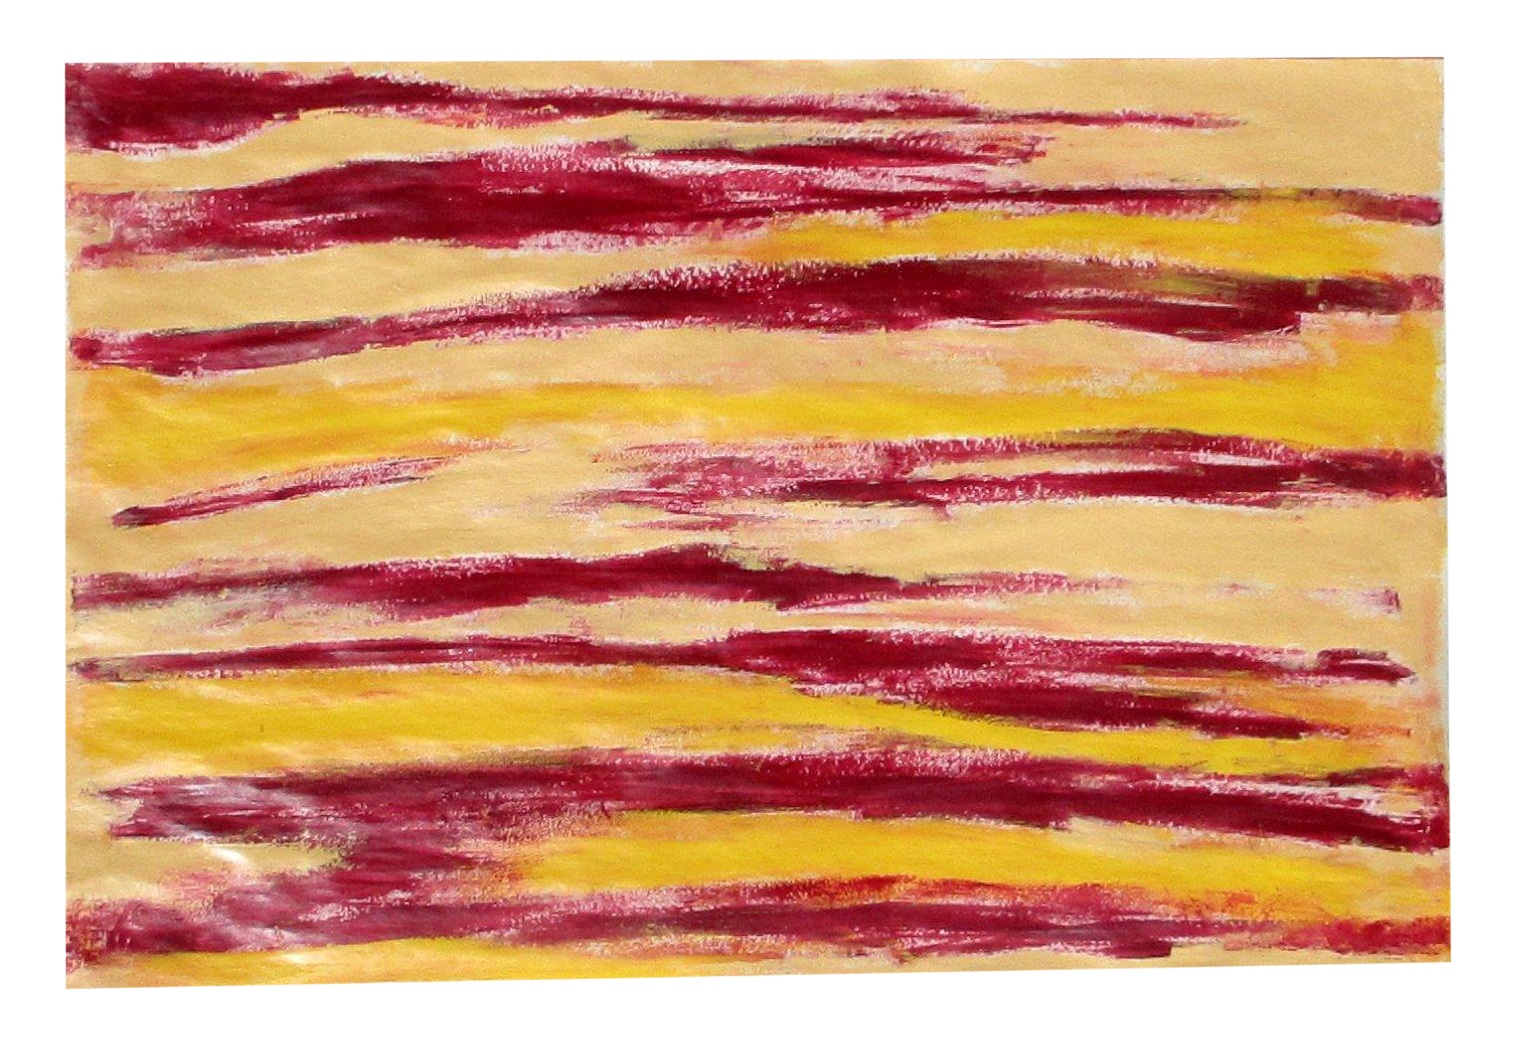 Paint streaks png. Alaina abstract red yellow